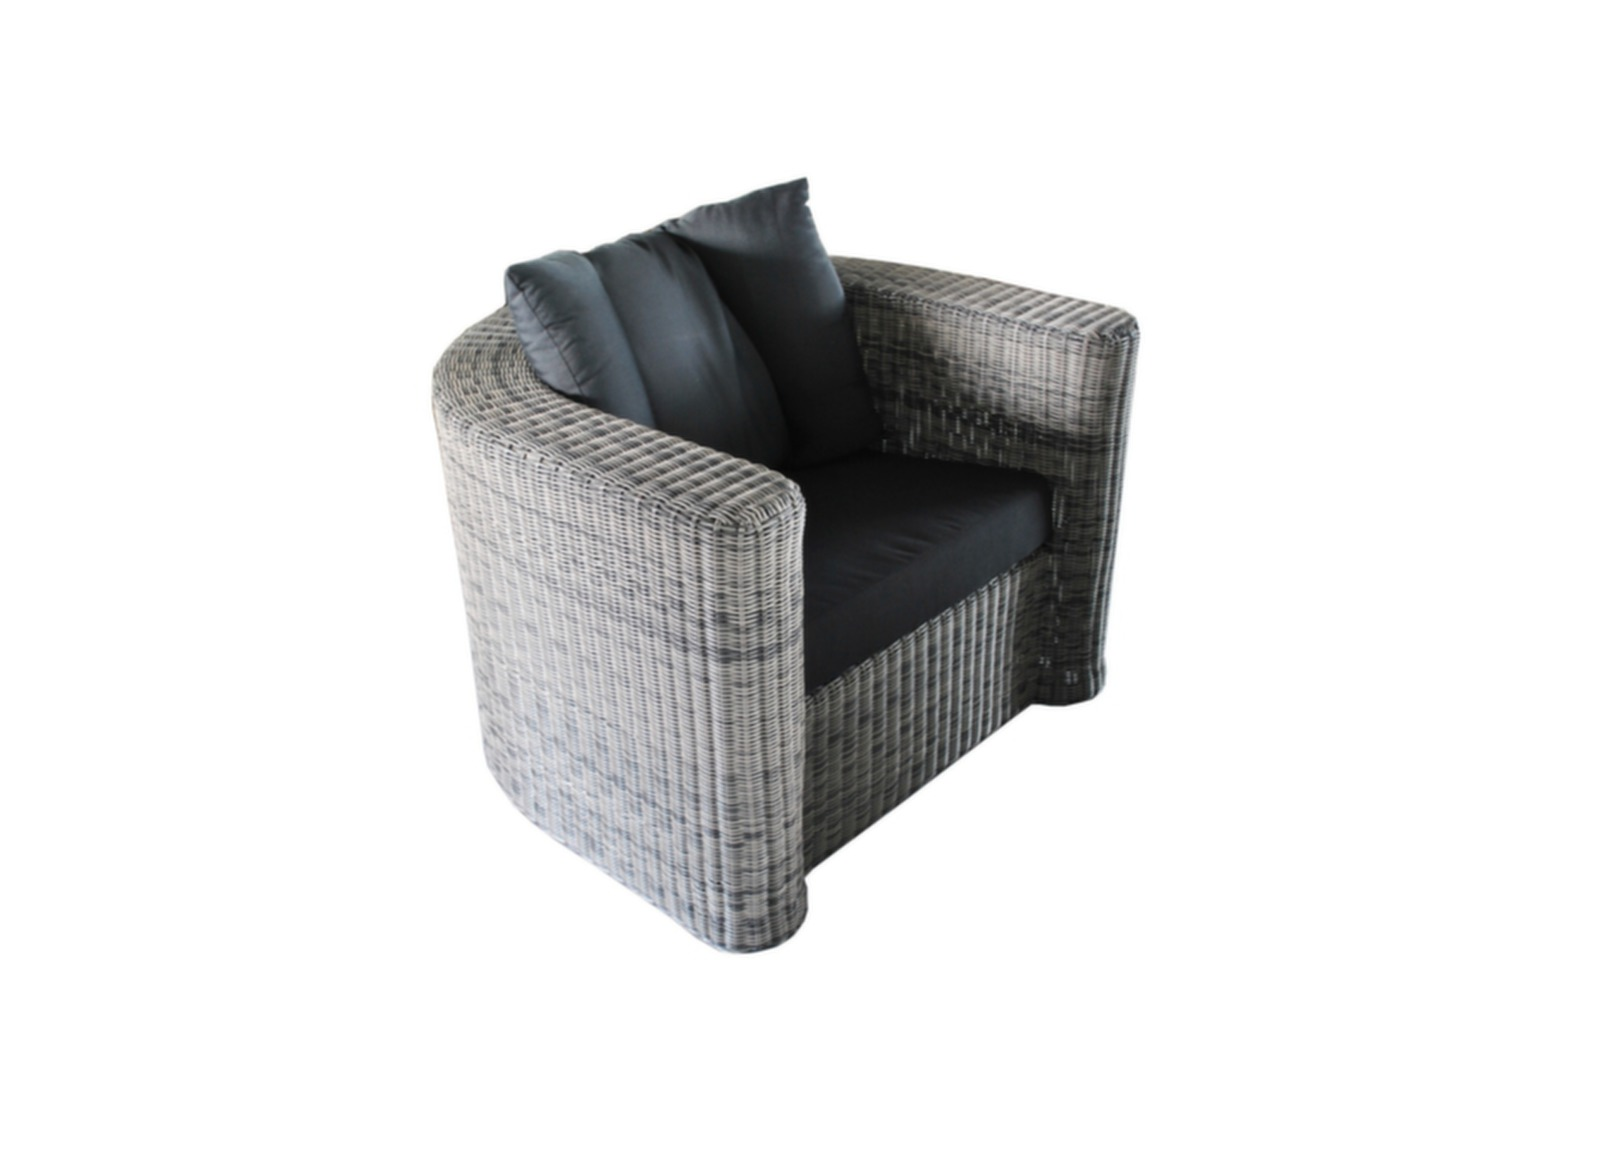 fauteuil d tente av ro fauteuils de jardin mobilier. Black Bedroom Furniture Sets. Home Design Ideas